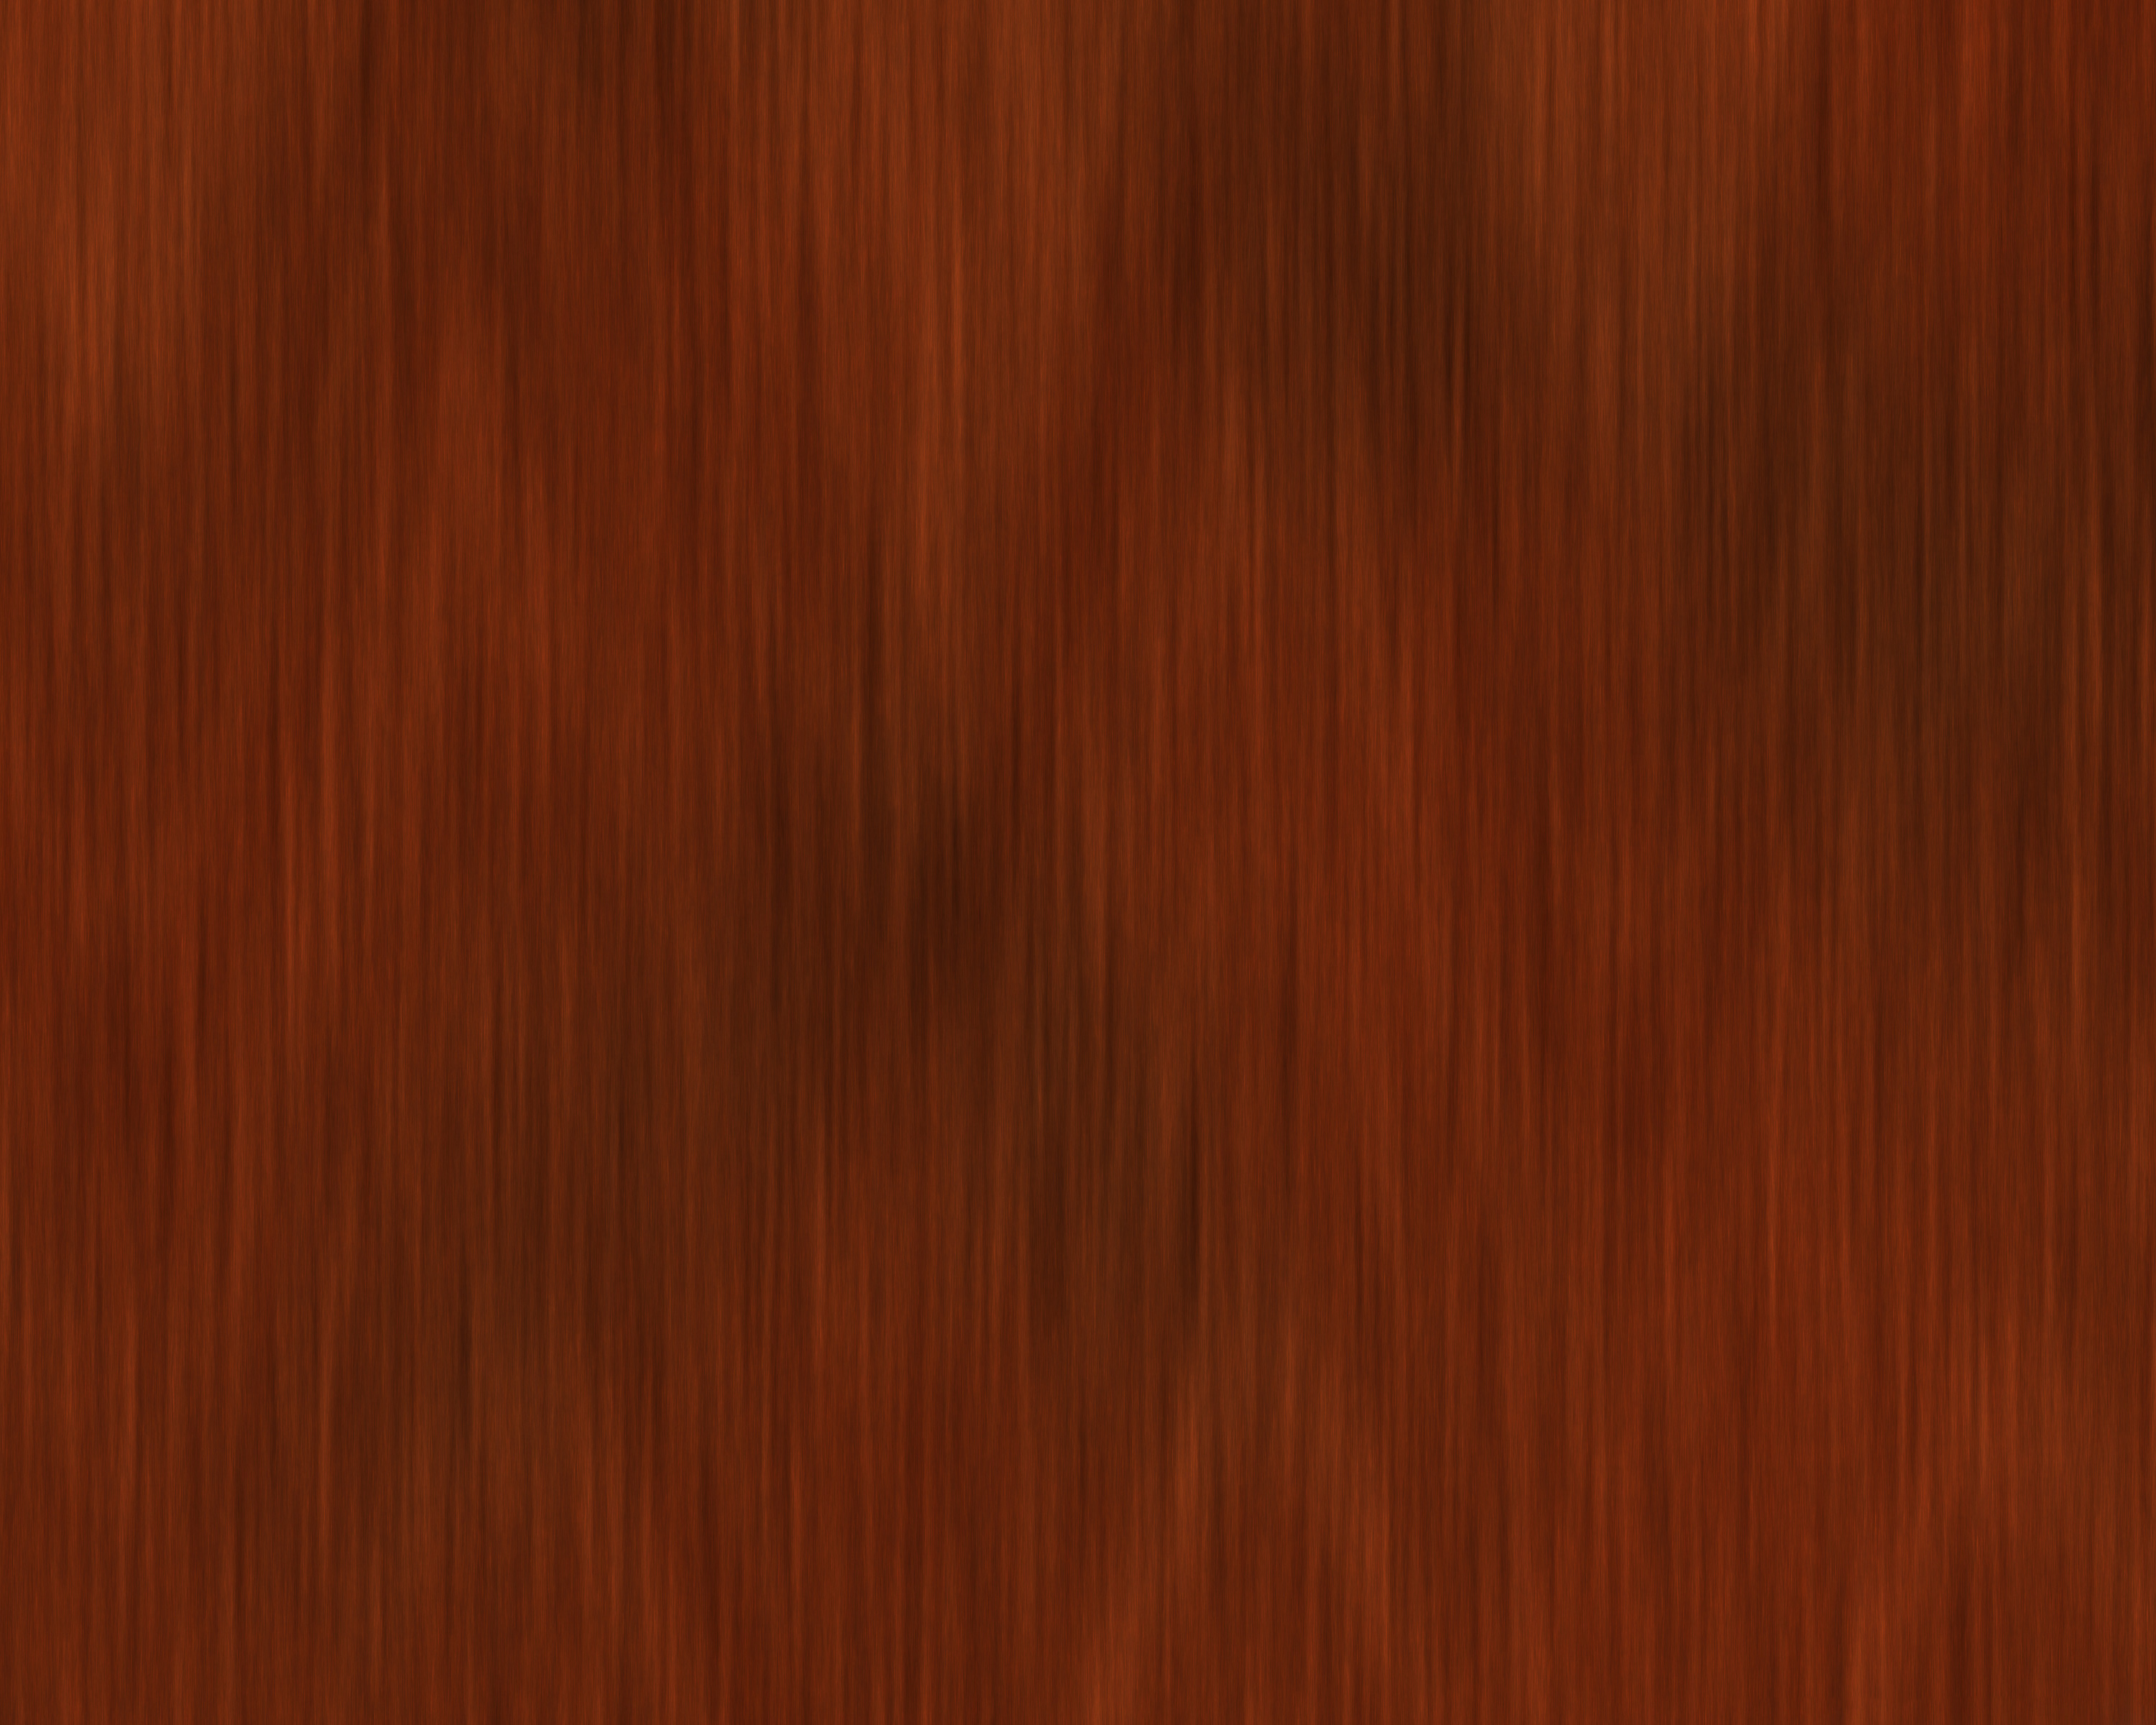 tree wood, download photo, background, texture, wood texture, wooden texture